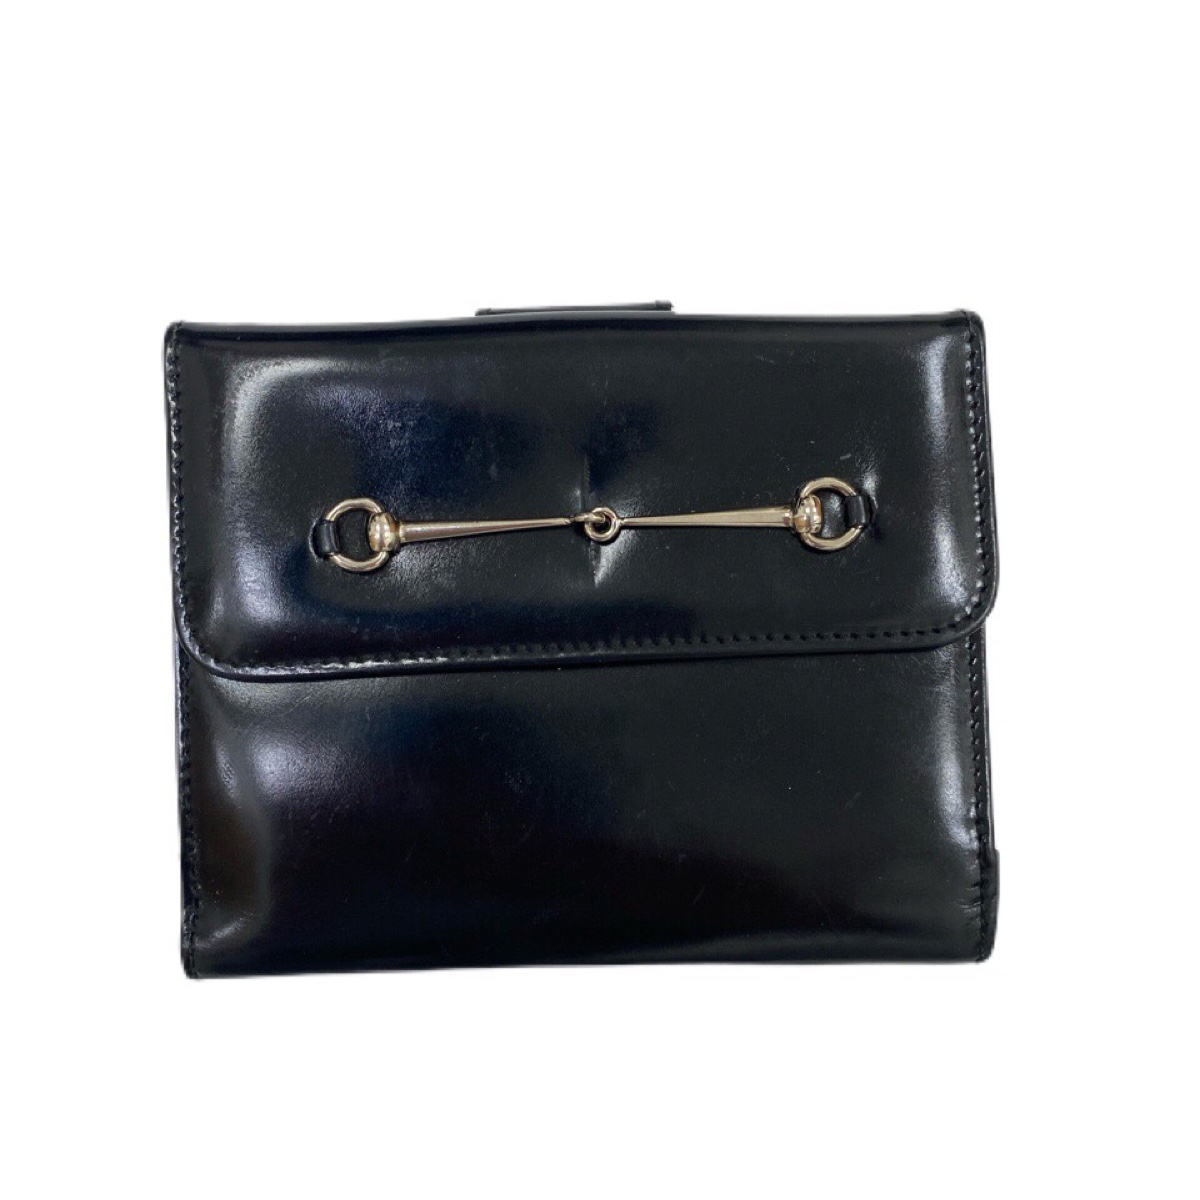 Gucci Black Patent Leather Wallet